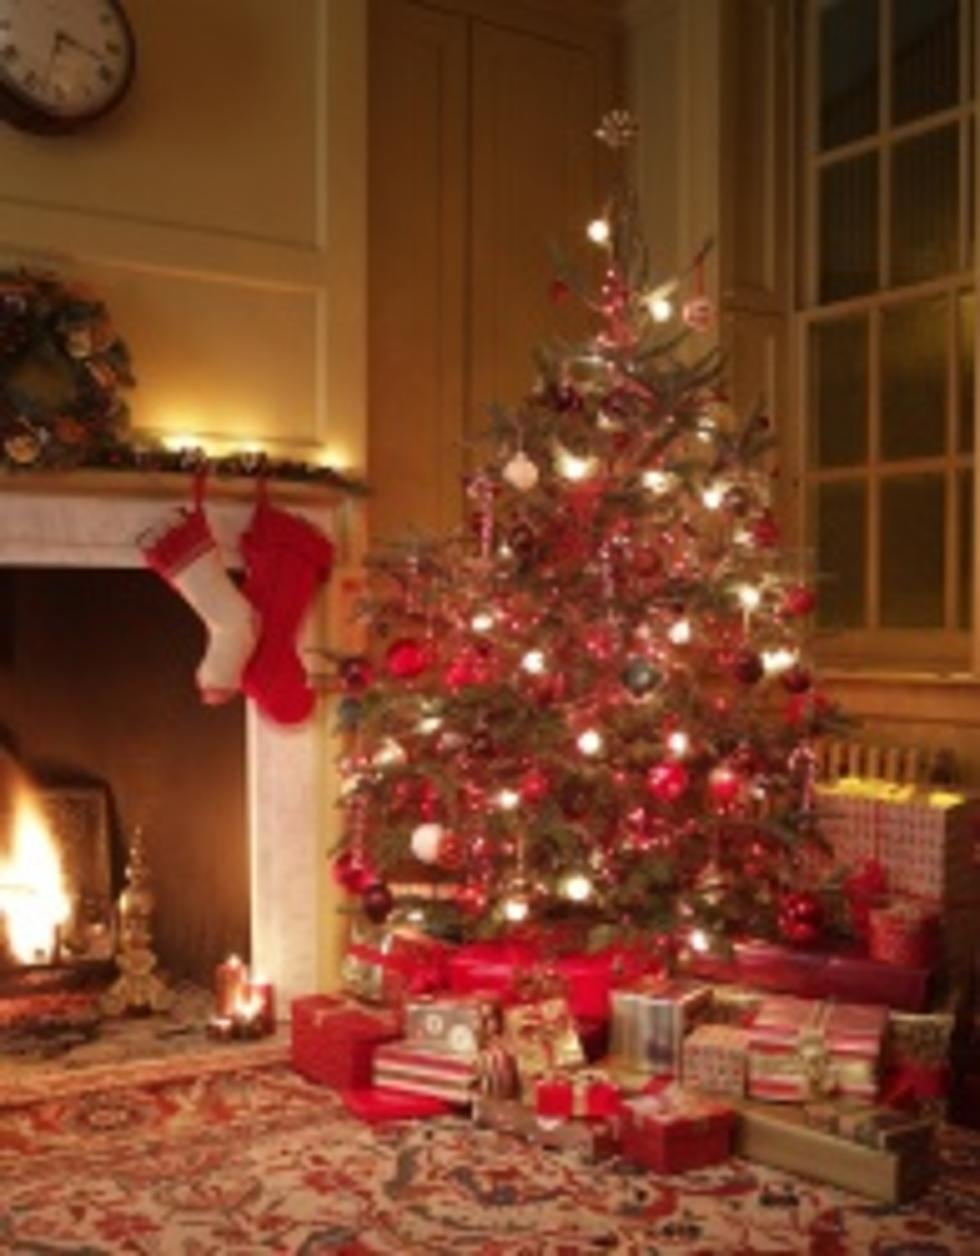 Gj Boy Scout Christmas Trees 2021 Where To Buy Fresh Cut Christmas Trees In Grand Junction